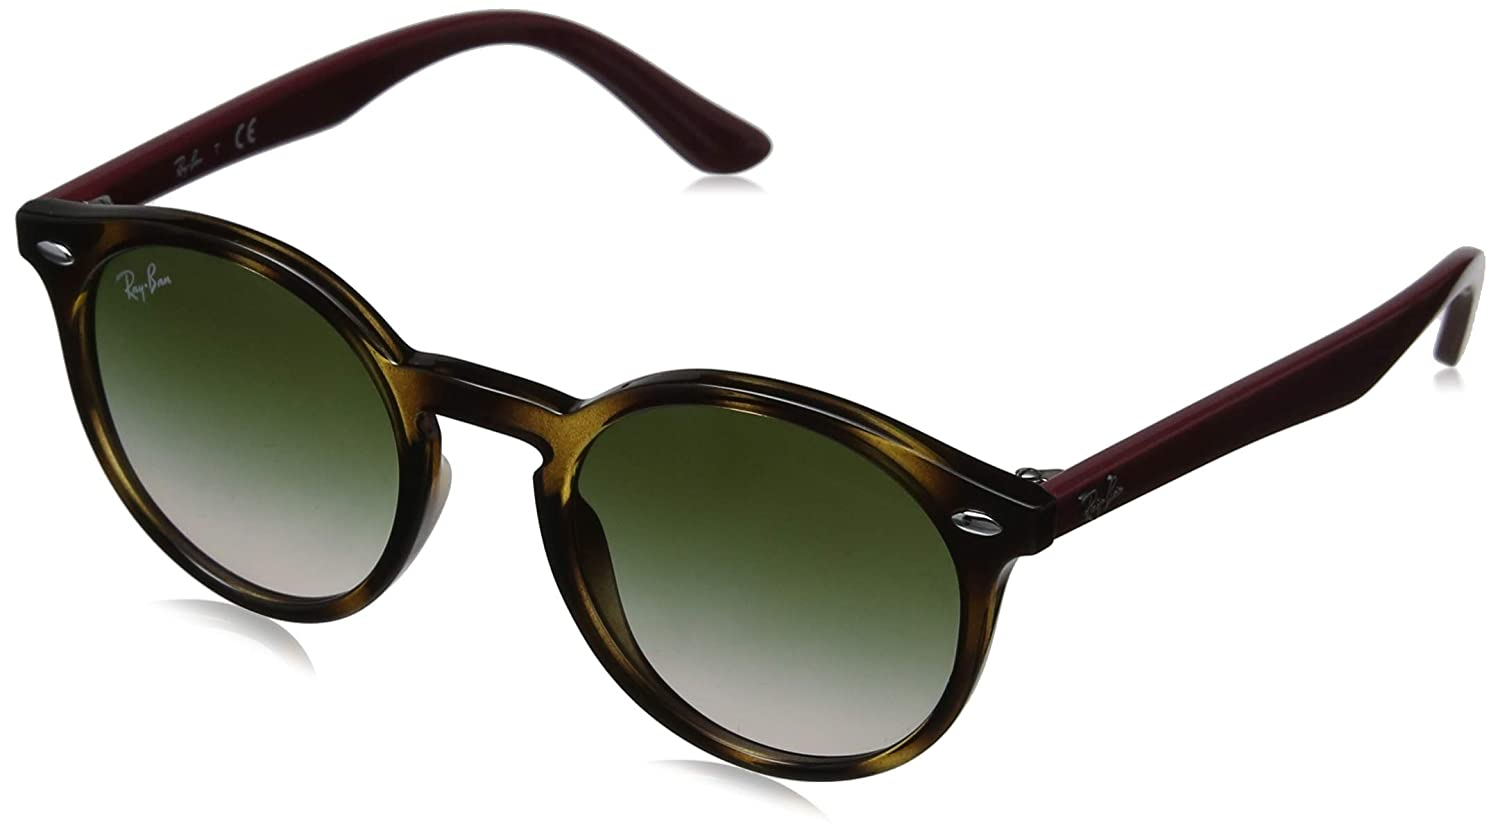 Amazon.com: Ray-Ban Junior Kids plástico unisex anteojos de ...